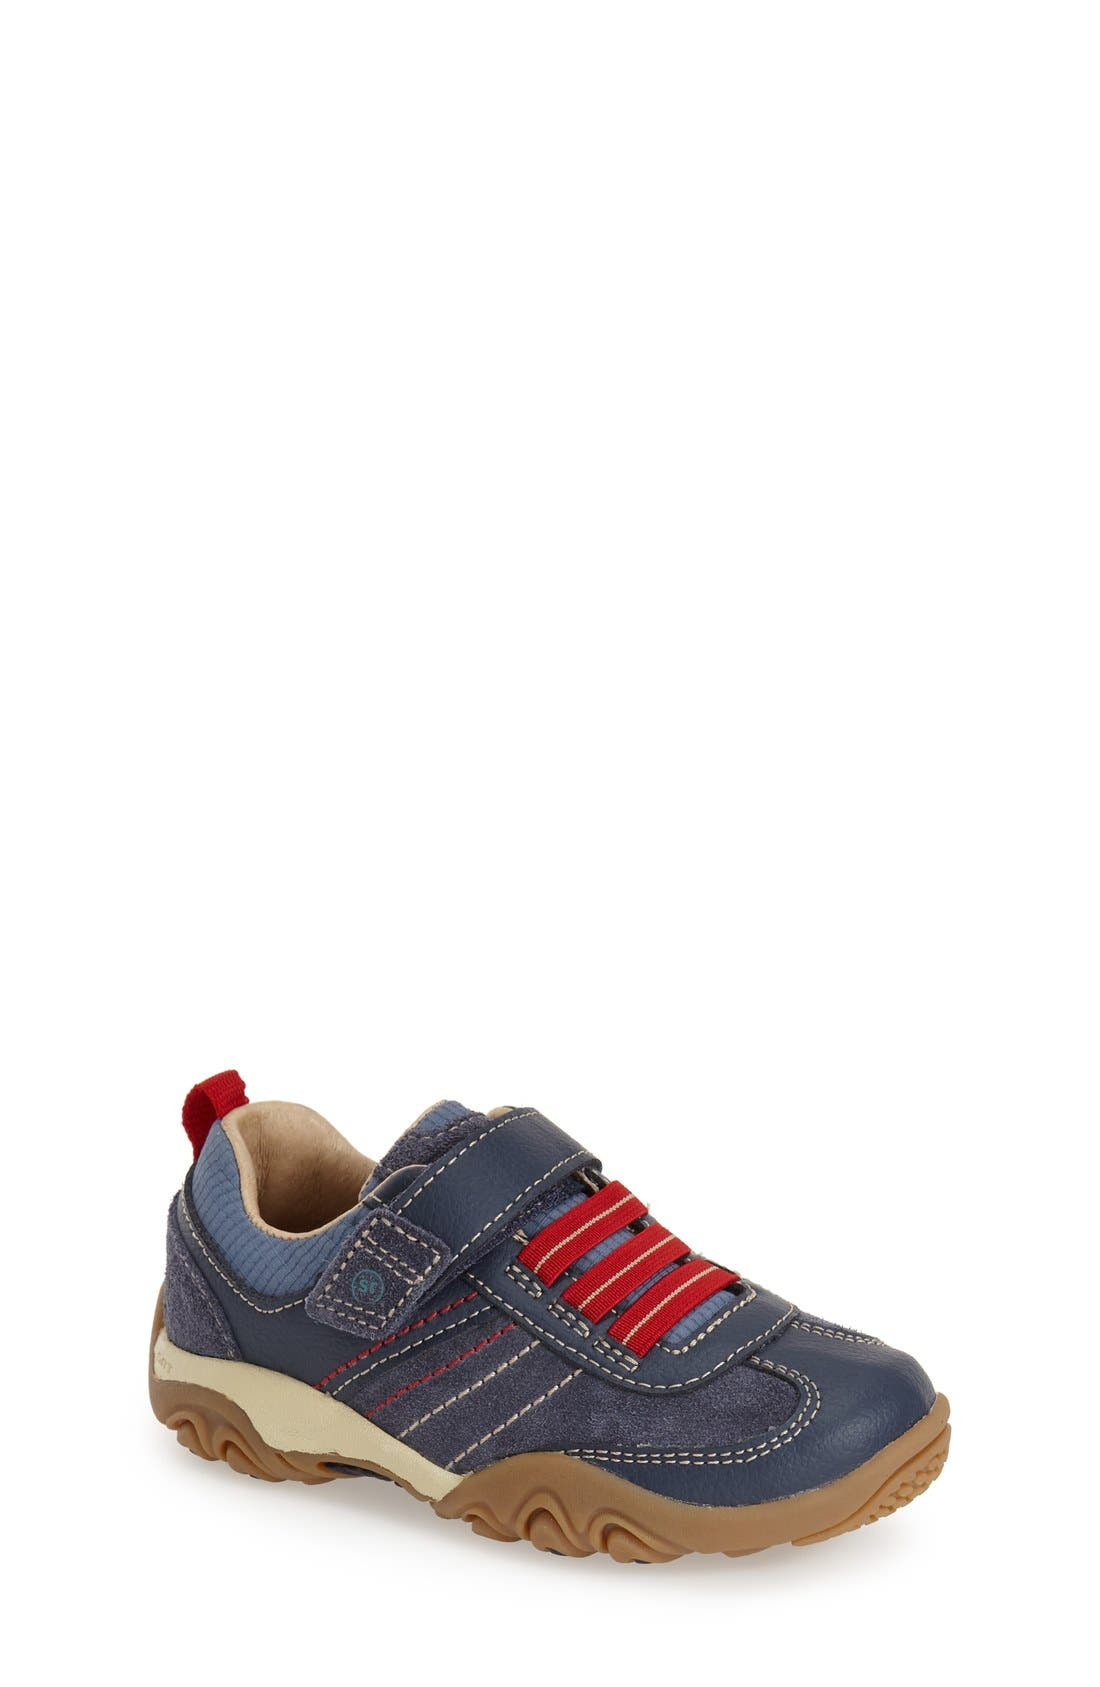 Main Image - Stride Rite 'SRT Prescott' Sneaker (Baby, Walker & Toddler)